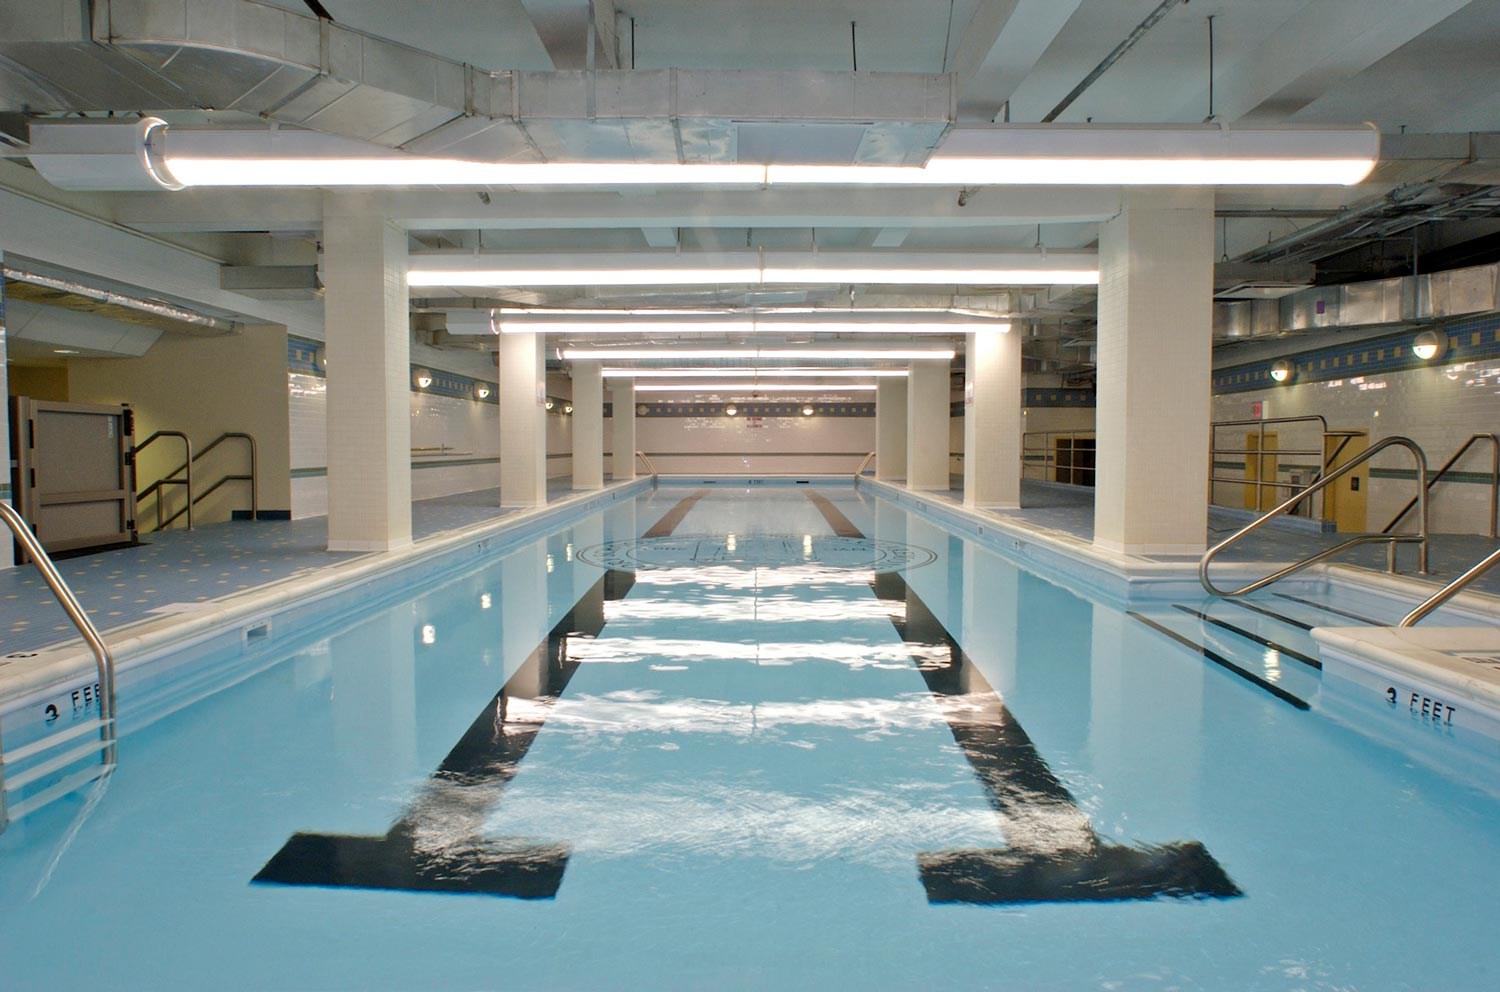 The school features an olympic sized swimming pool which was added at the roof level.